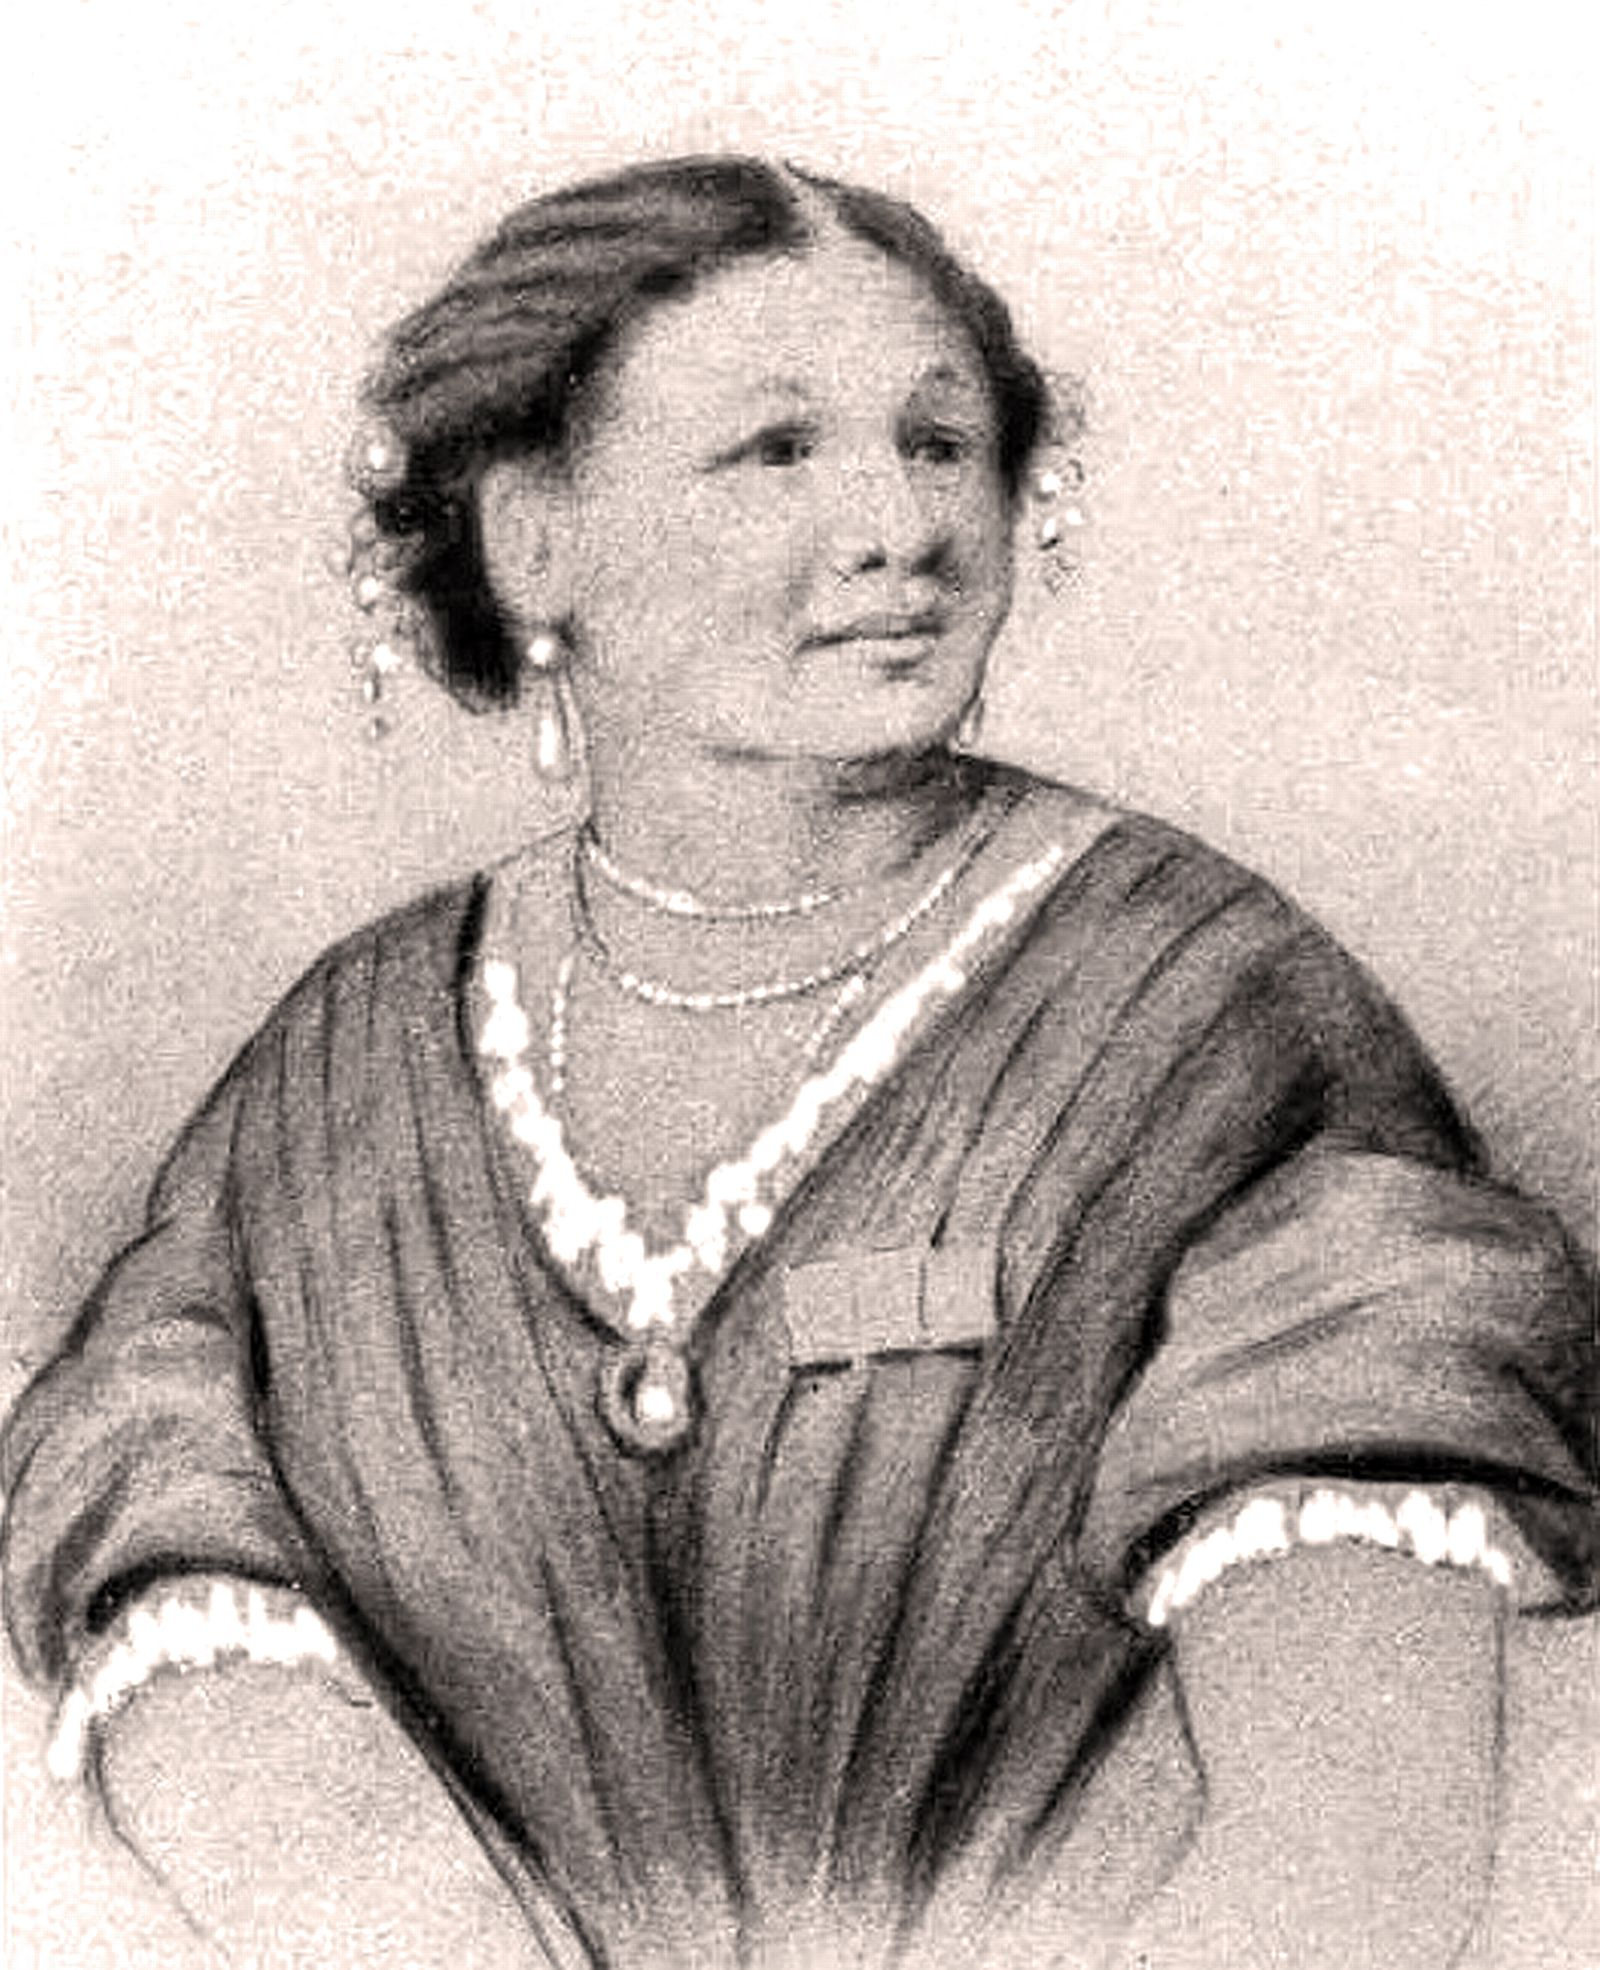 Mary Jane Seacole (1805 - 1881), known as Mother Seacole or Mary Grant, was a Jamaican nurse best known for her involvement in the Crimean War.